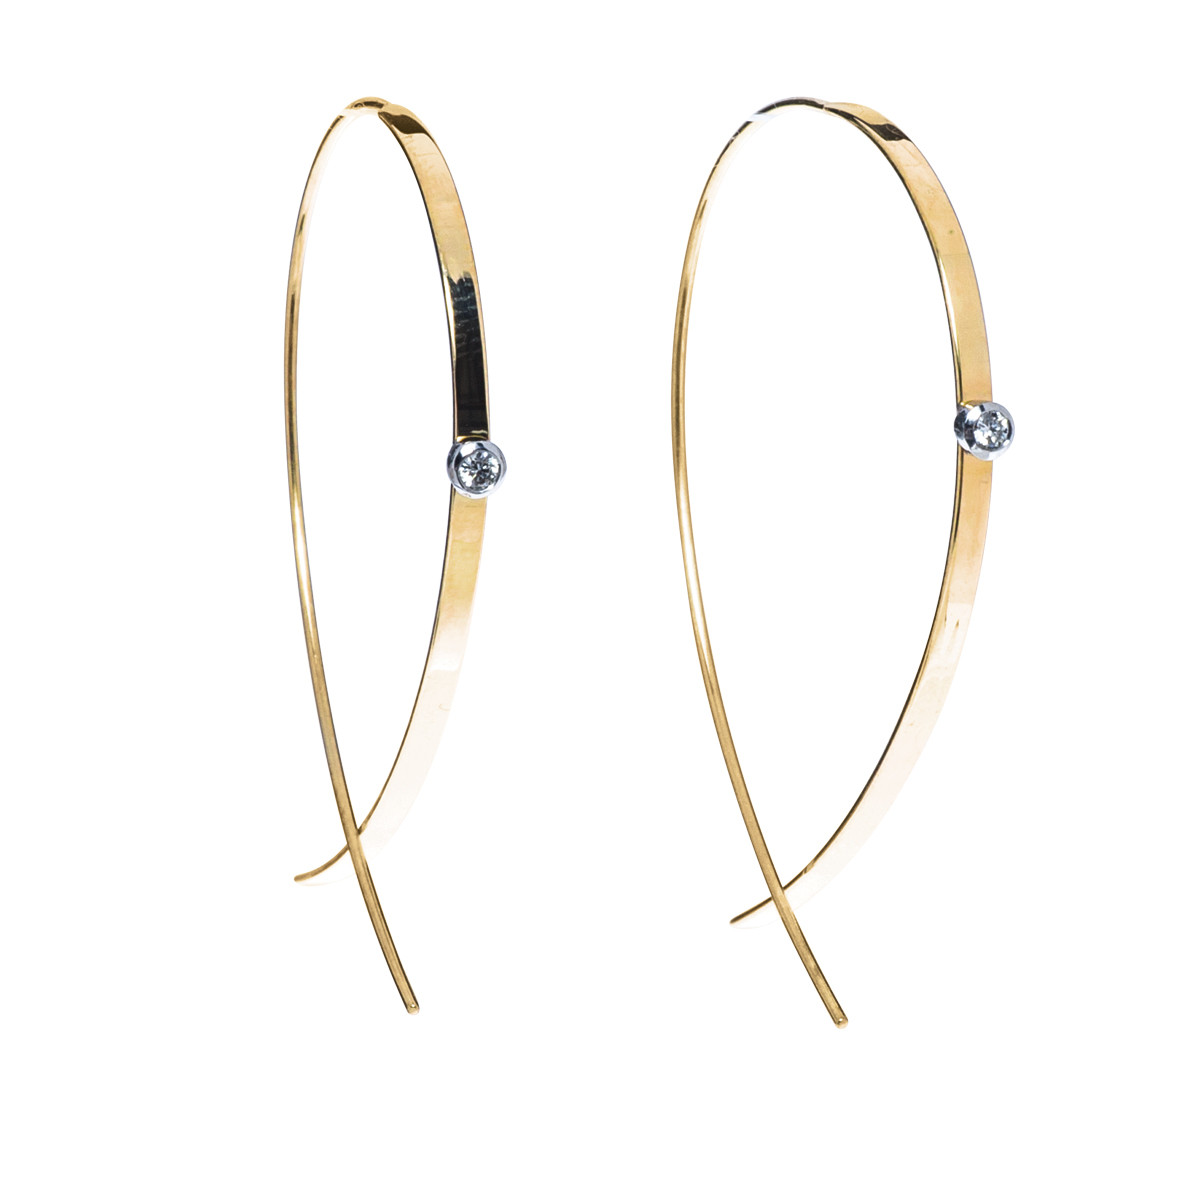 Lana Jewelry Upside Down Flat Hoops